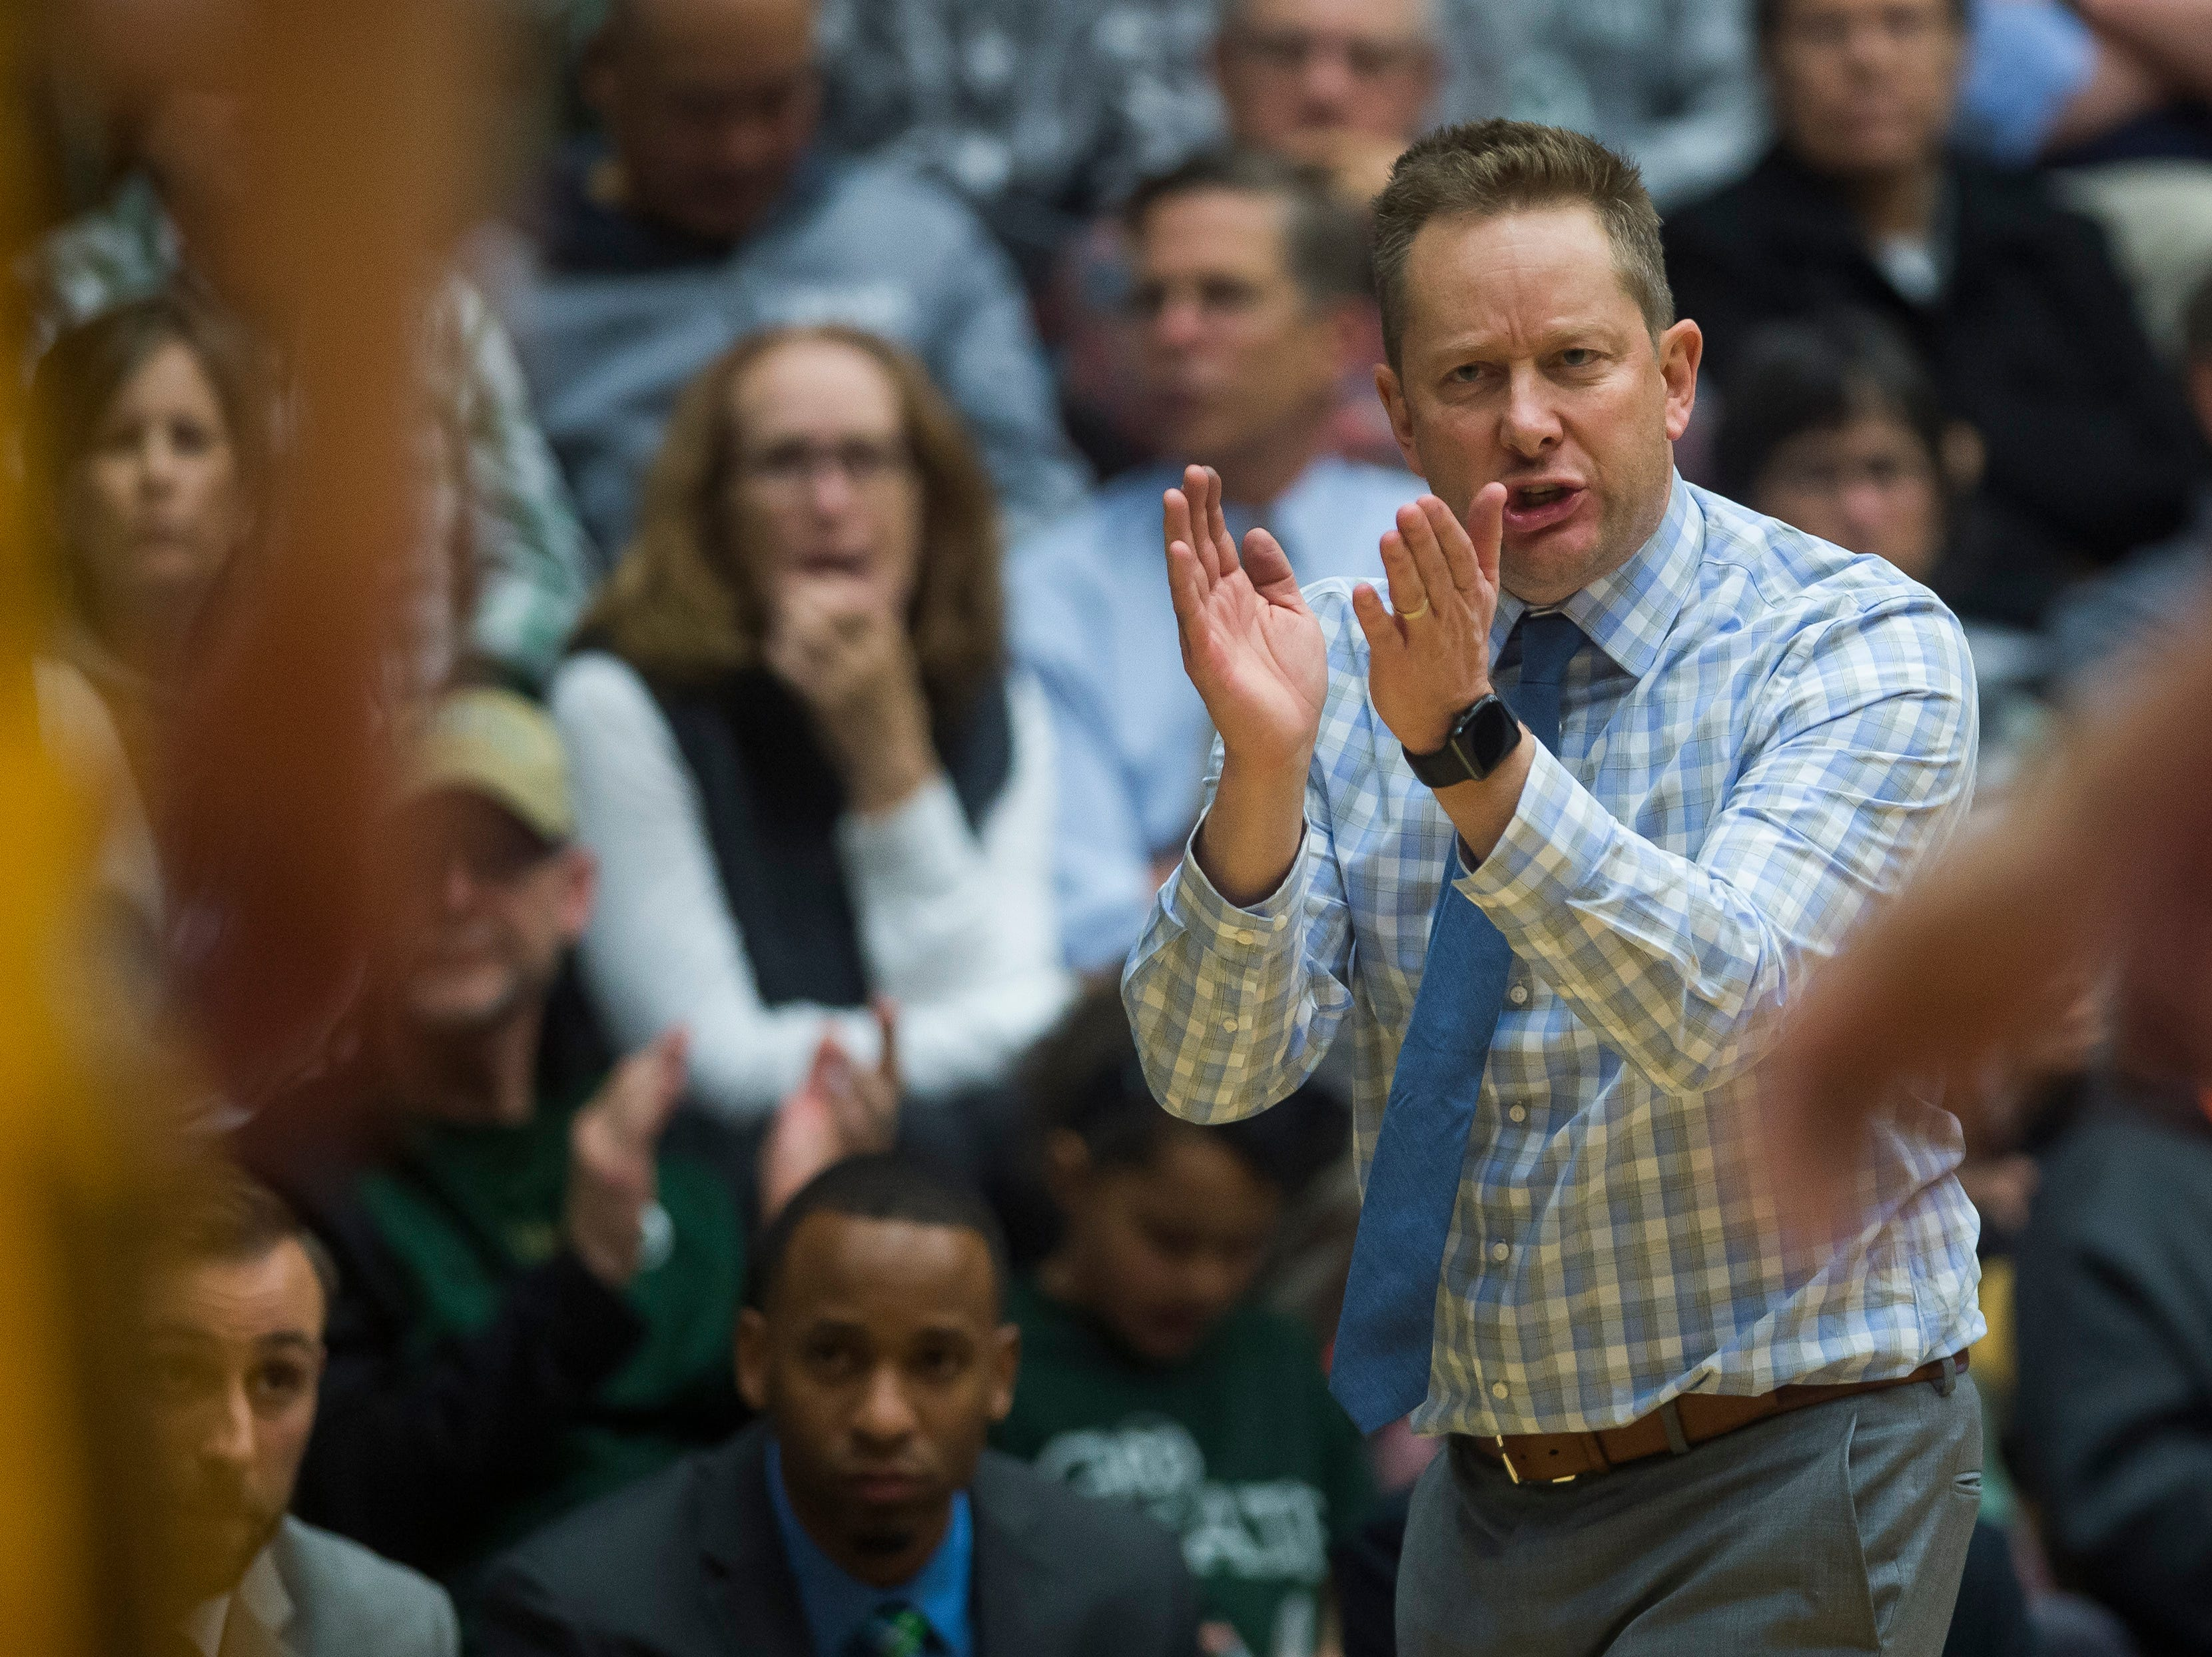 Colorado State University head coach Niko Medved talks to his team during a game against Colorado Christian University on Wednesday, Nov. 7, 2018, at Moby Arena in Fort Collins, Colo.